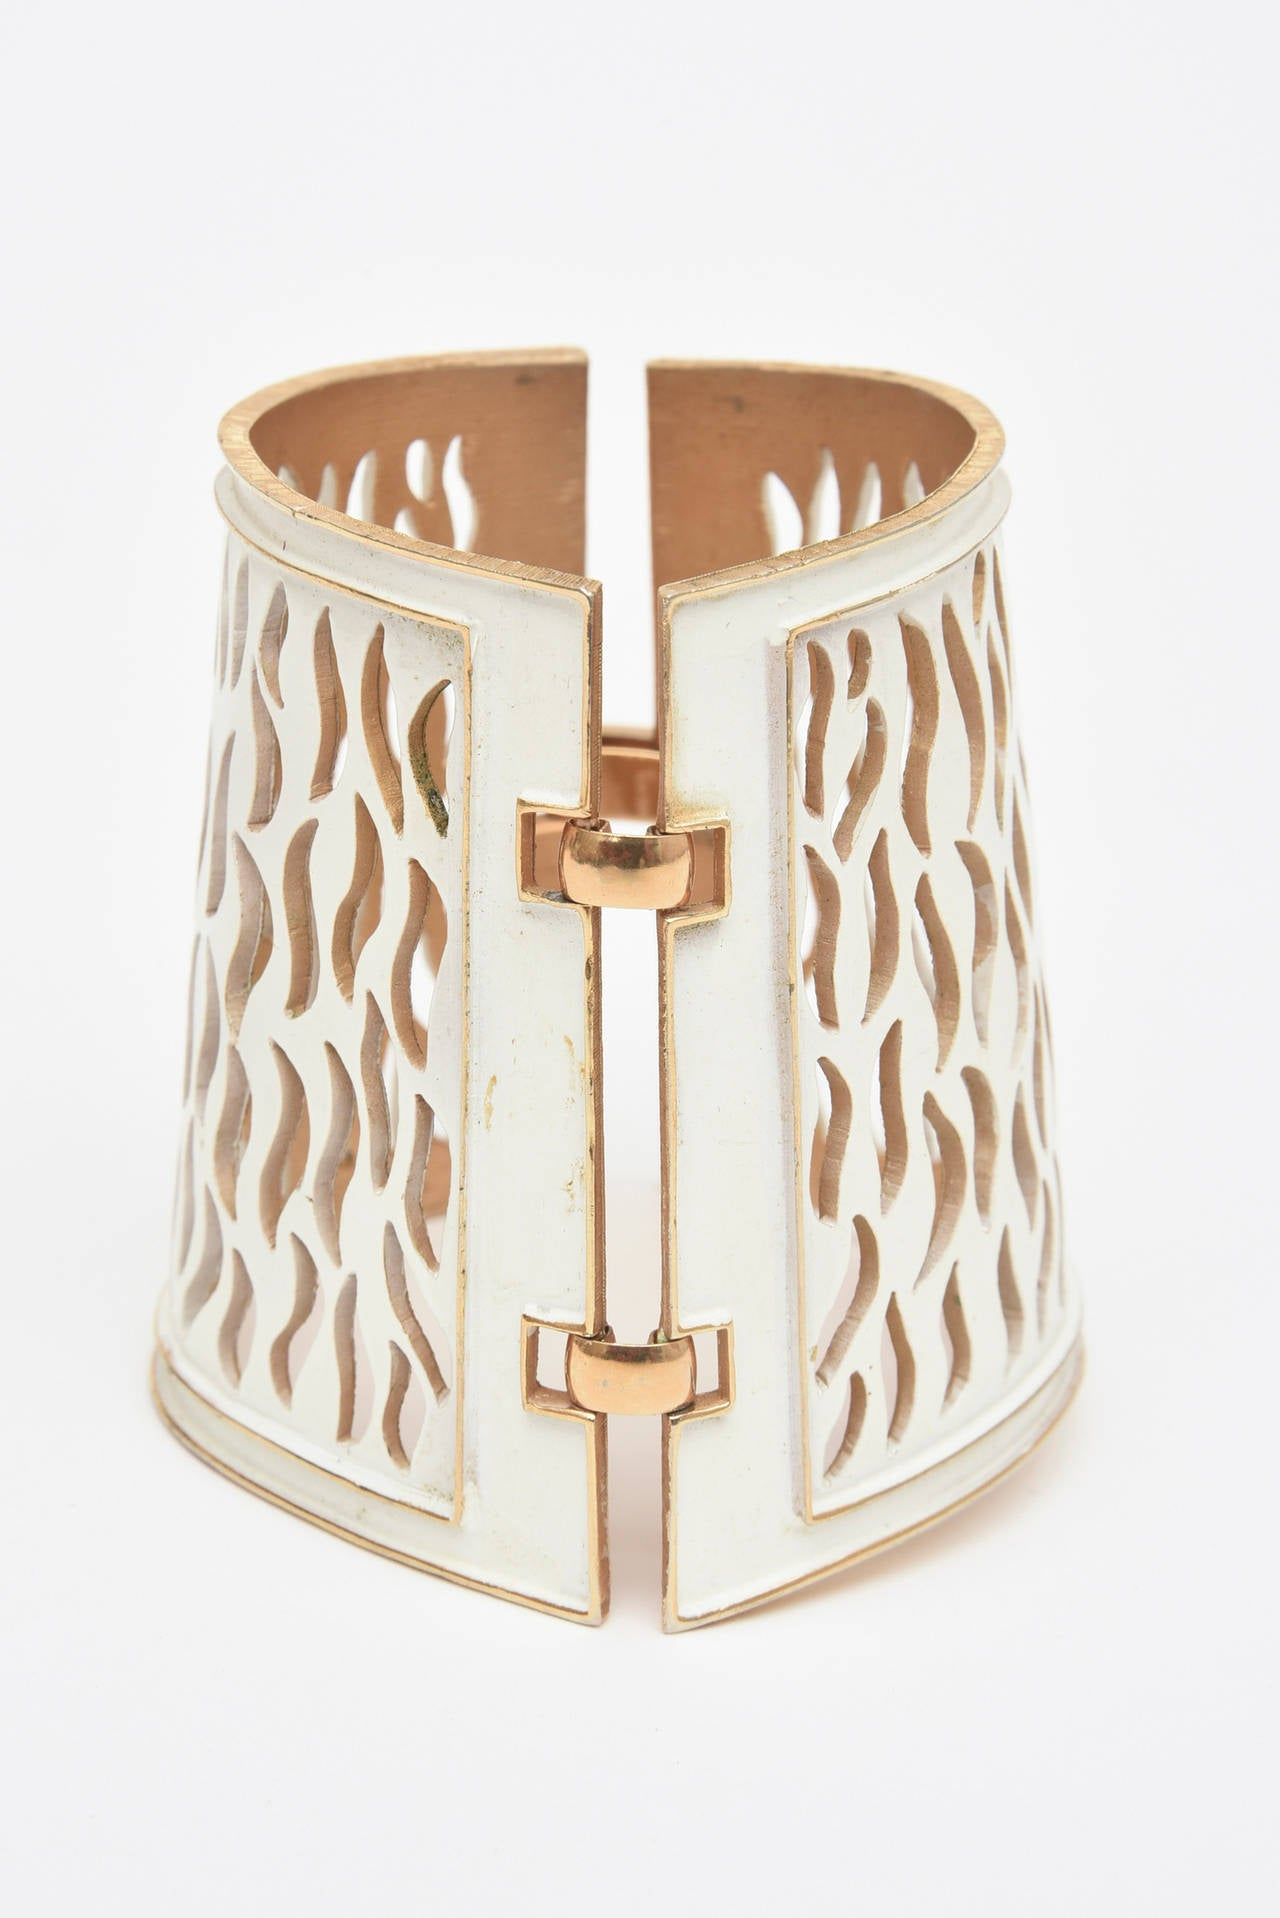 This wonderful Trifari sculptural cuff is fun and conversational. The off white enamel is beautiful against the gold. The cutout details are artistic. The sculptural cutouts are like laser cut enemale. It has a gold latch and is connected with he